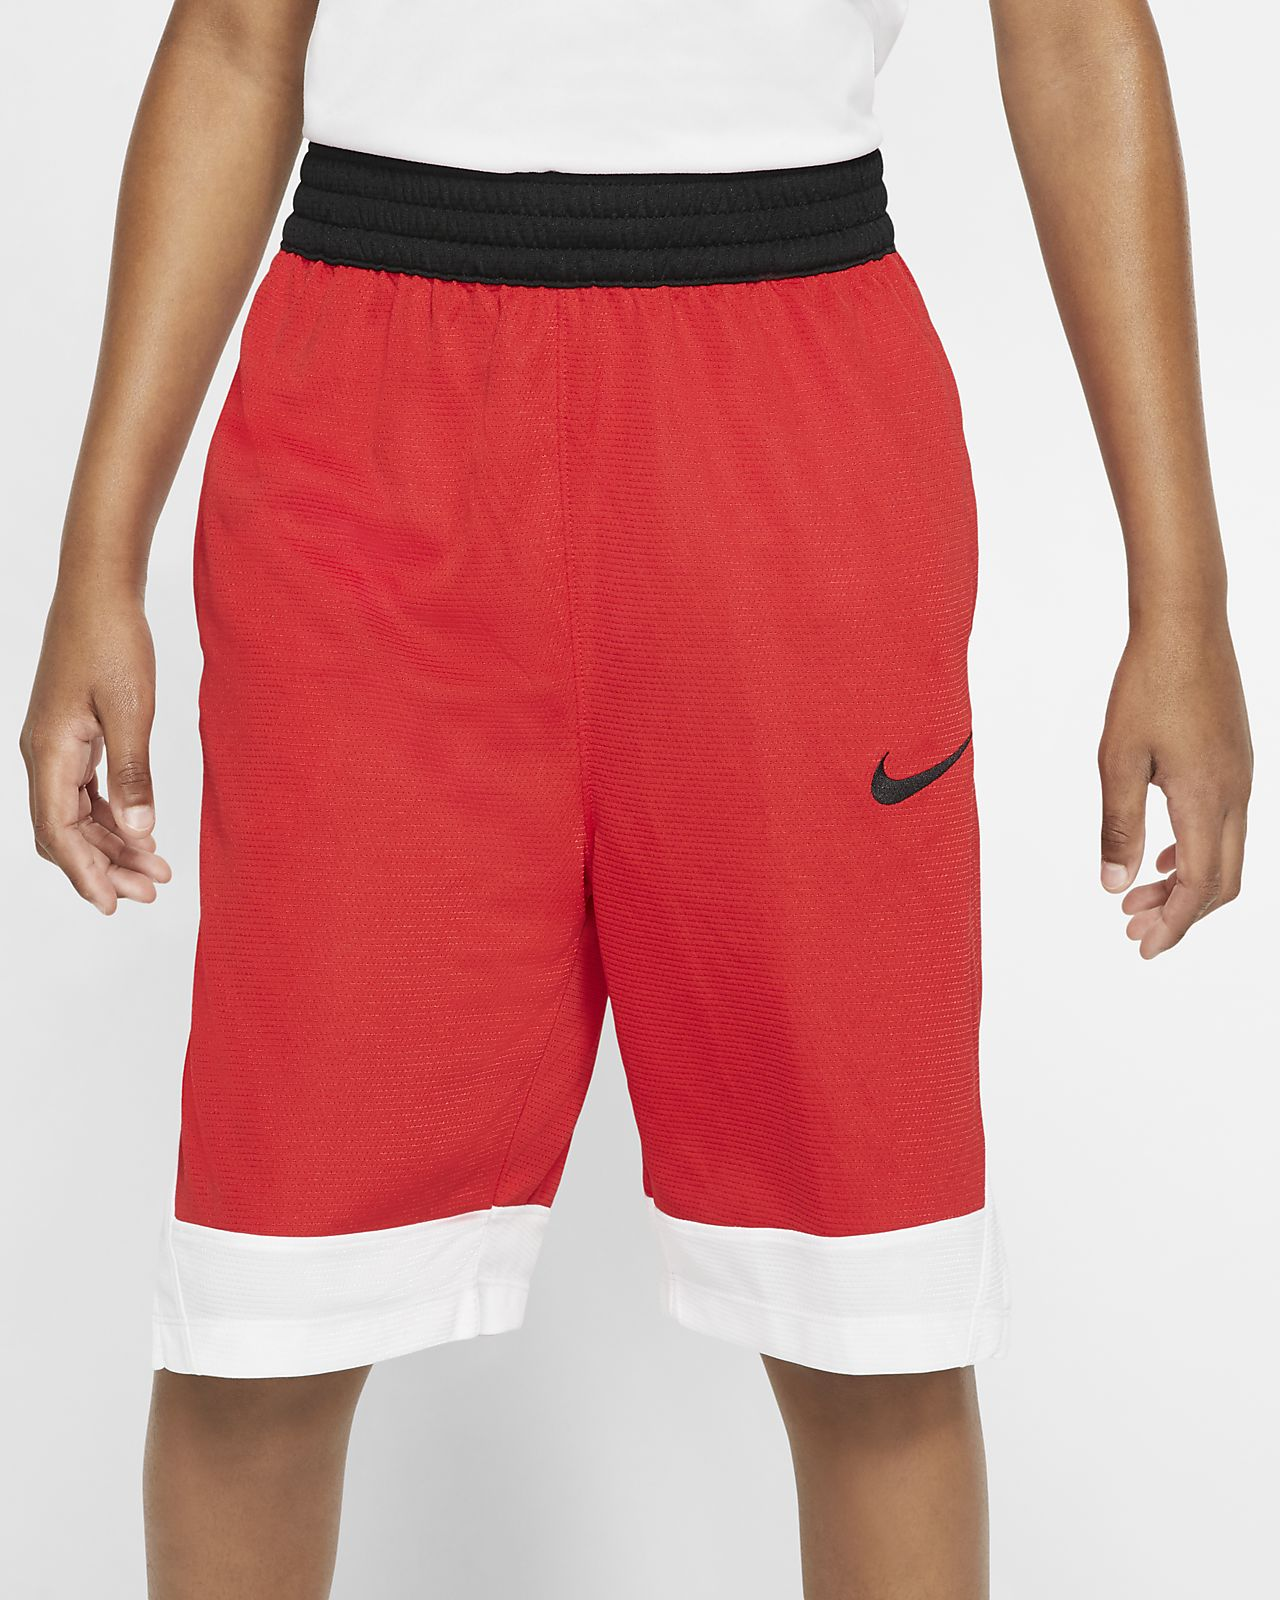 Nike  Big Kids' (Boys') Basketball Shorts